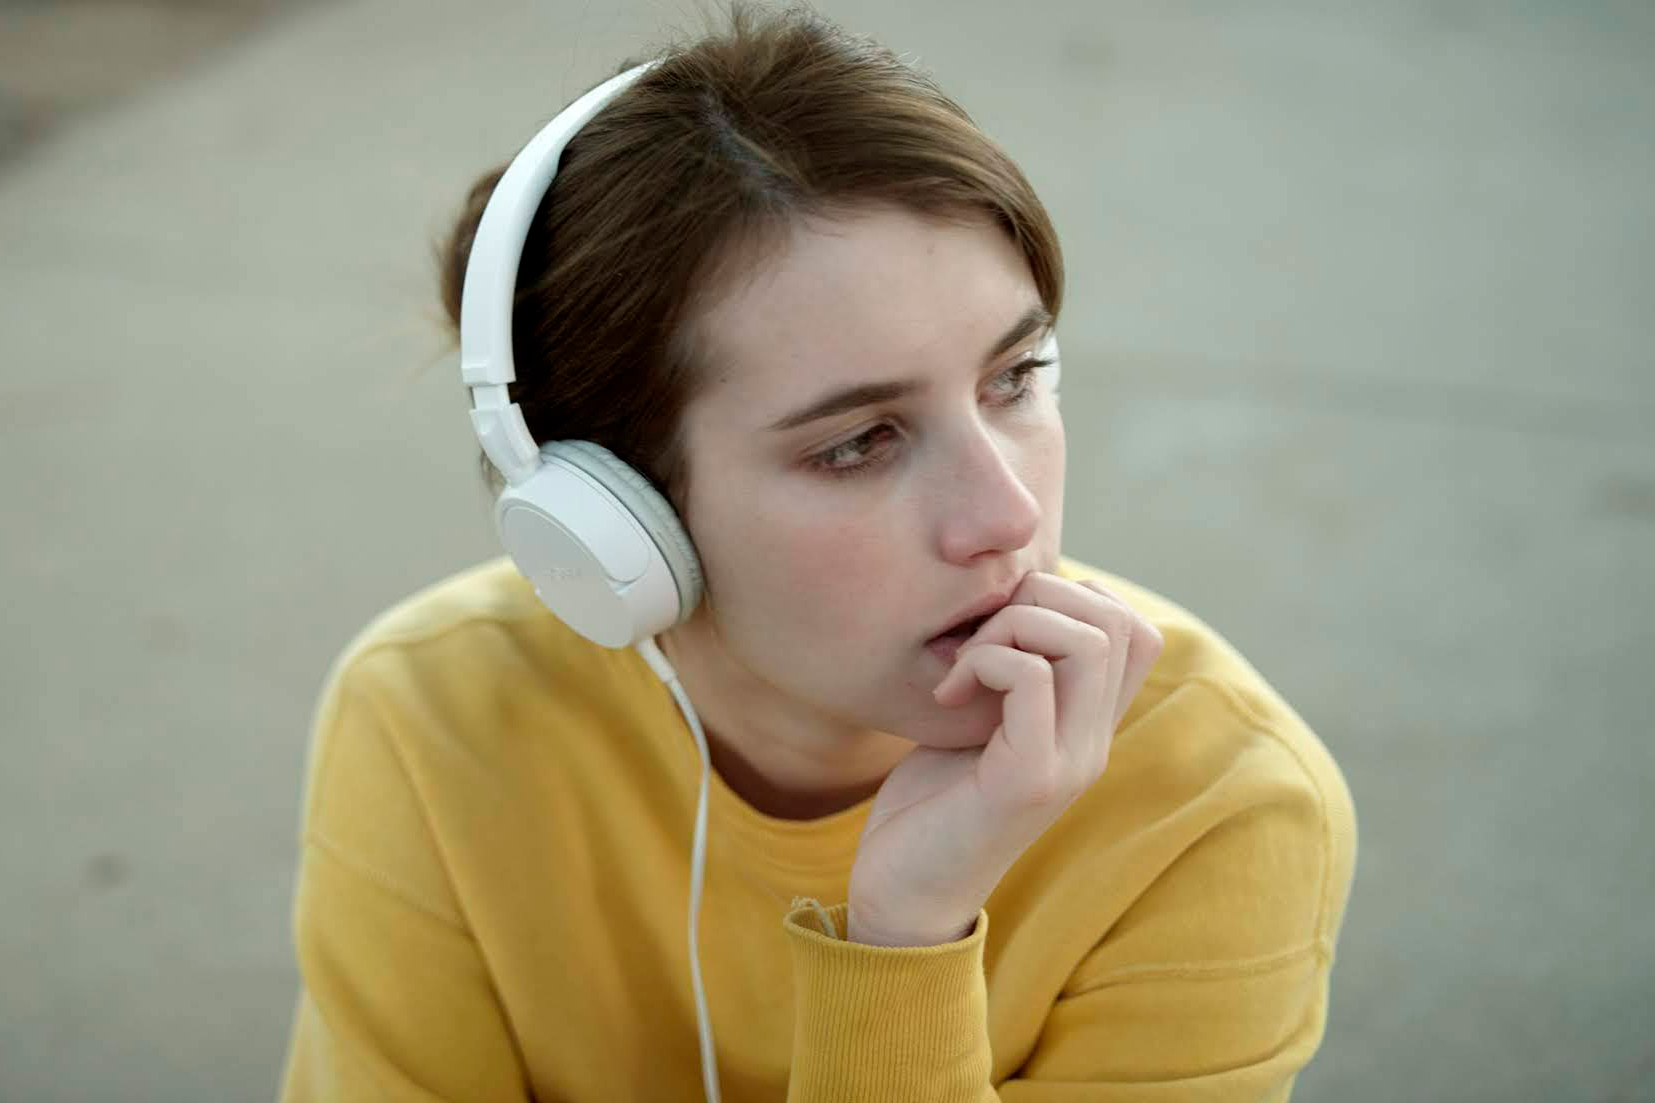 emma_headphones.jpg